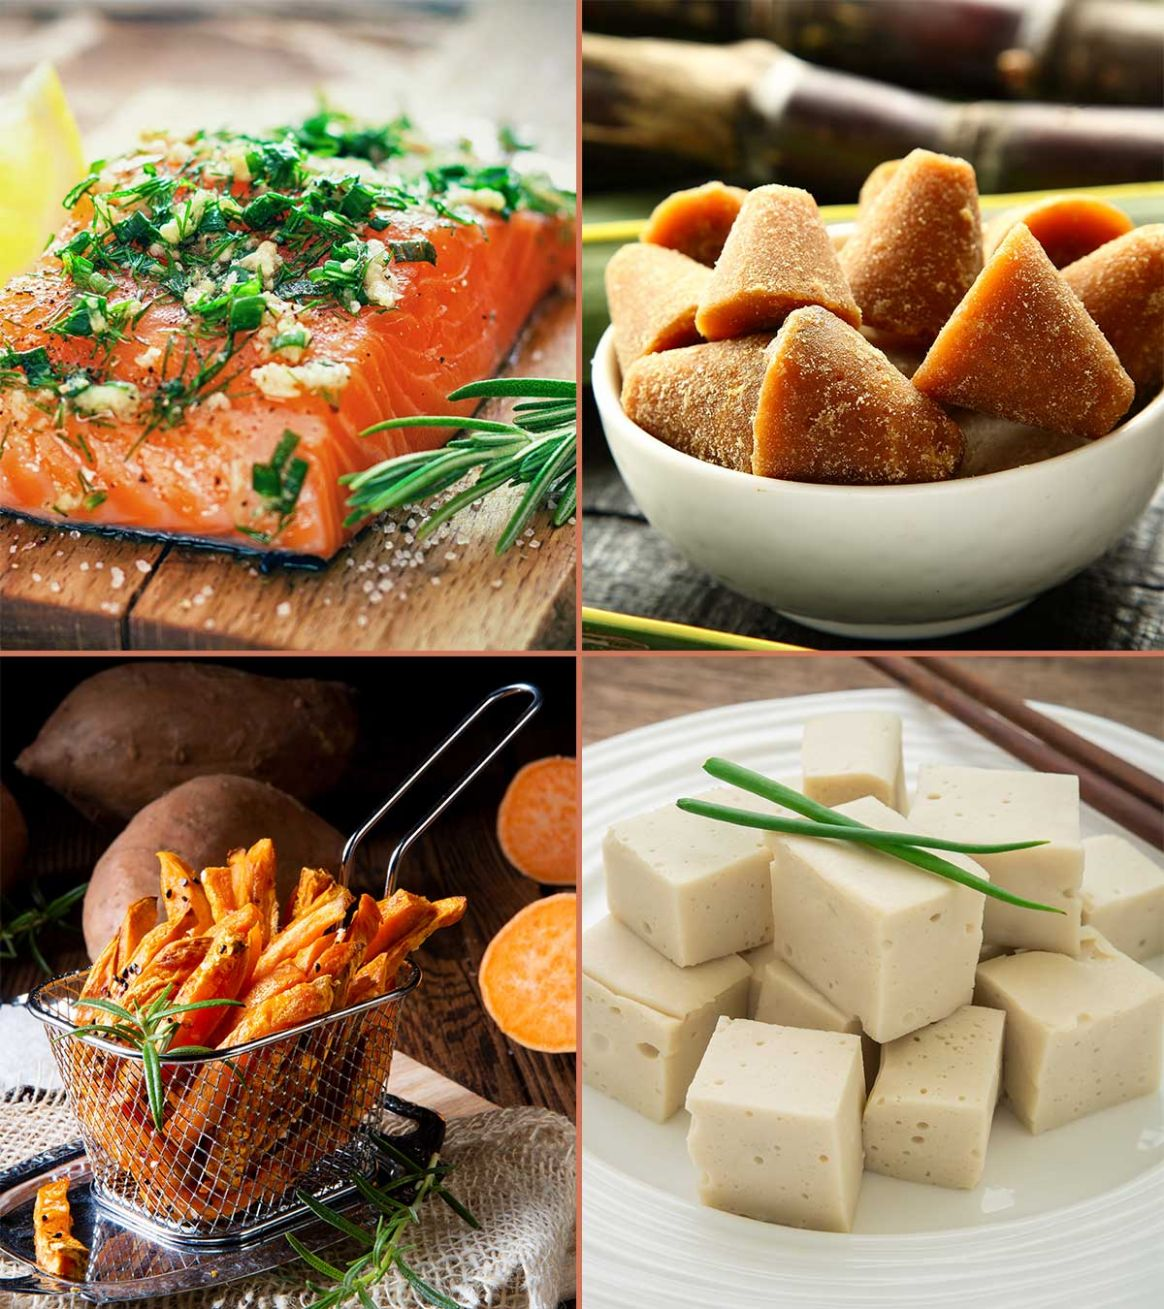 12 Healthy Weight Gaining Foods For Kids - Healthy Recipes To Gain Weight